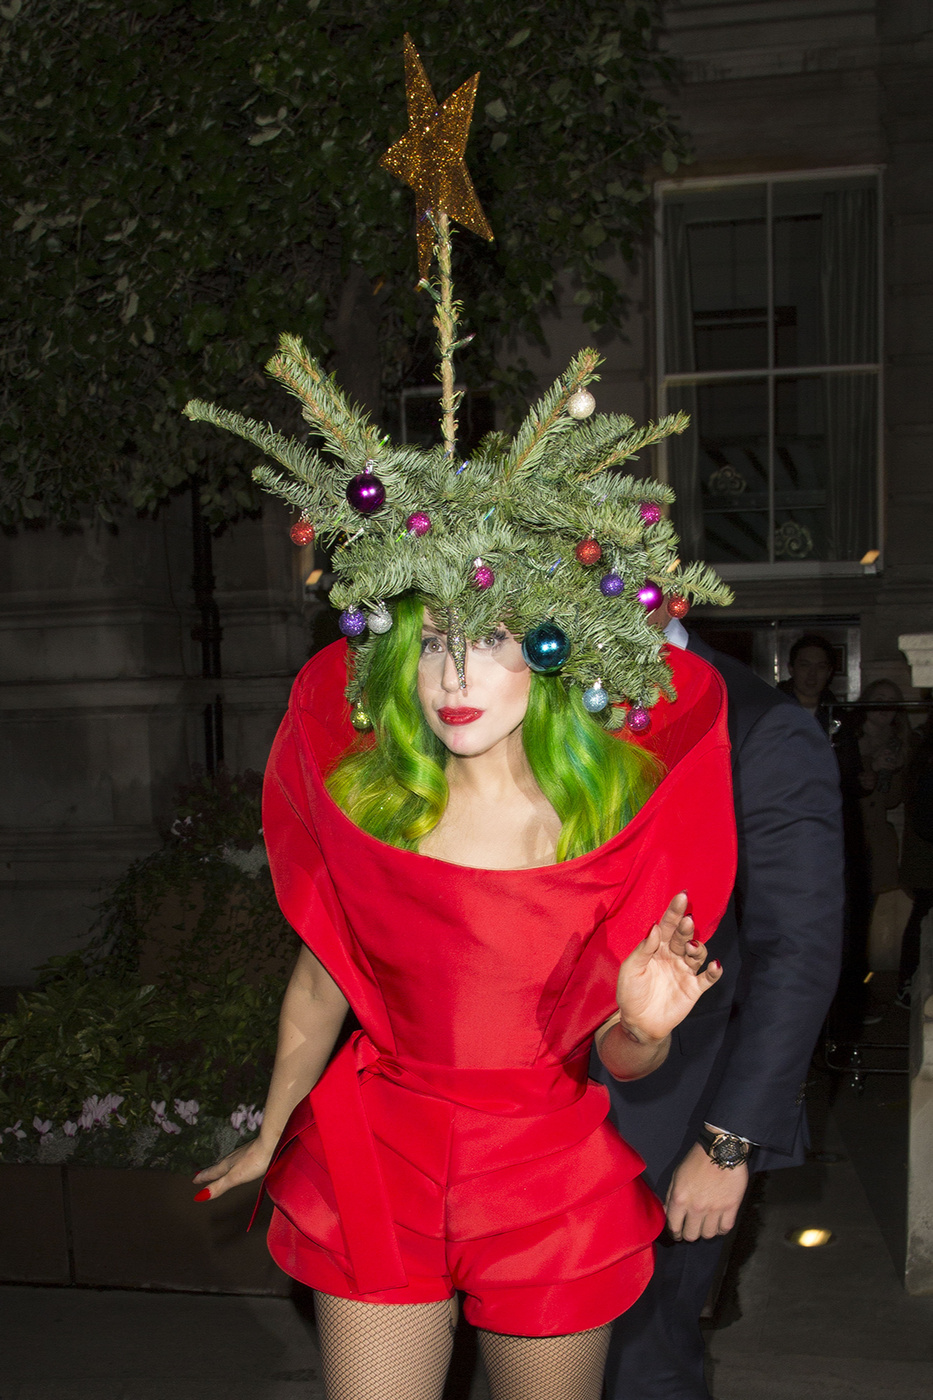 110060, LONDON, UNITED KINGDOM, Sunday December 8, 2013.Lady Garesseessed as a decorated Christmas tree is showered by an unexpected gift - a paparazzi sneaker, in London. After receiving gifts off fans outside, Lady Gaga made her way inside. During the melee to get Gaga up the stairs into the Langham Hotel, a photographer quite literally lost his footing and his left shoe flew off while being held back by security. With an inquiring look on her face, Lady Gaga helped out, picked up the offending item by pinching it with the lace, she then chuckled before putting it to one side. Gaga turned, growled theatrically and then left the scene. Photograph: ? Ringo, PacificCoastNews.com **FEE MUST BE AGREED PRIOR TO USAGE** **E-TABLET/IPAD & MOBILE PHONE APP PUBLISHING REQUIRES ADDITIONAL FEES** LOS ANGELES OFFICE: +1 310 822 0419 LONDON OFFICE: +44 20 8090 4079